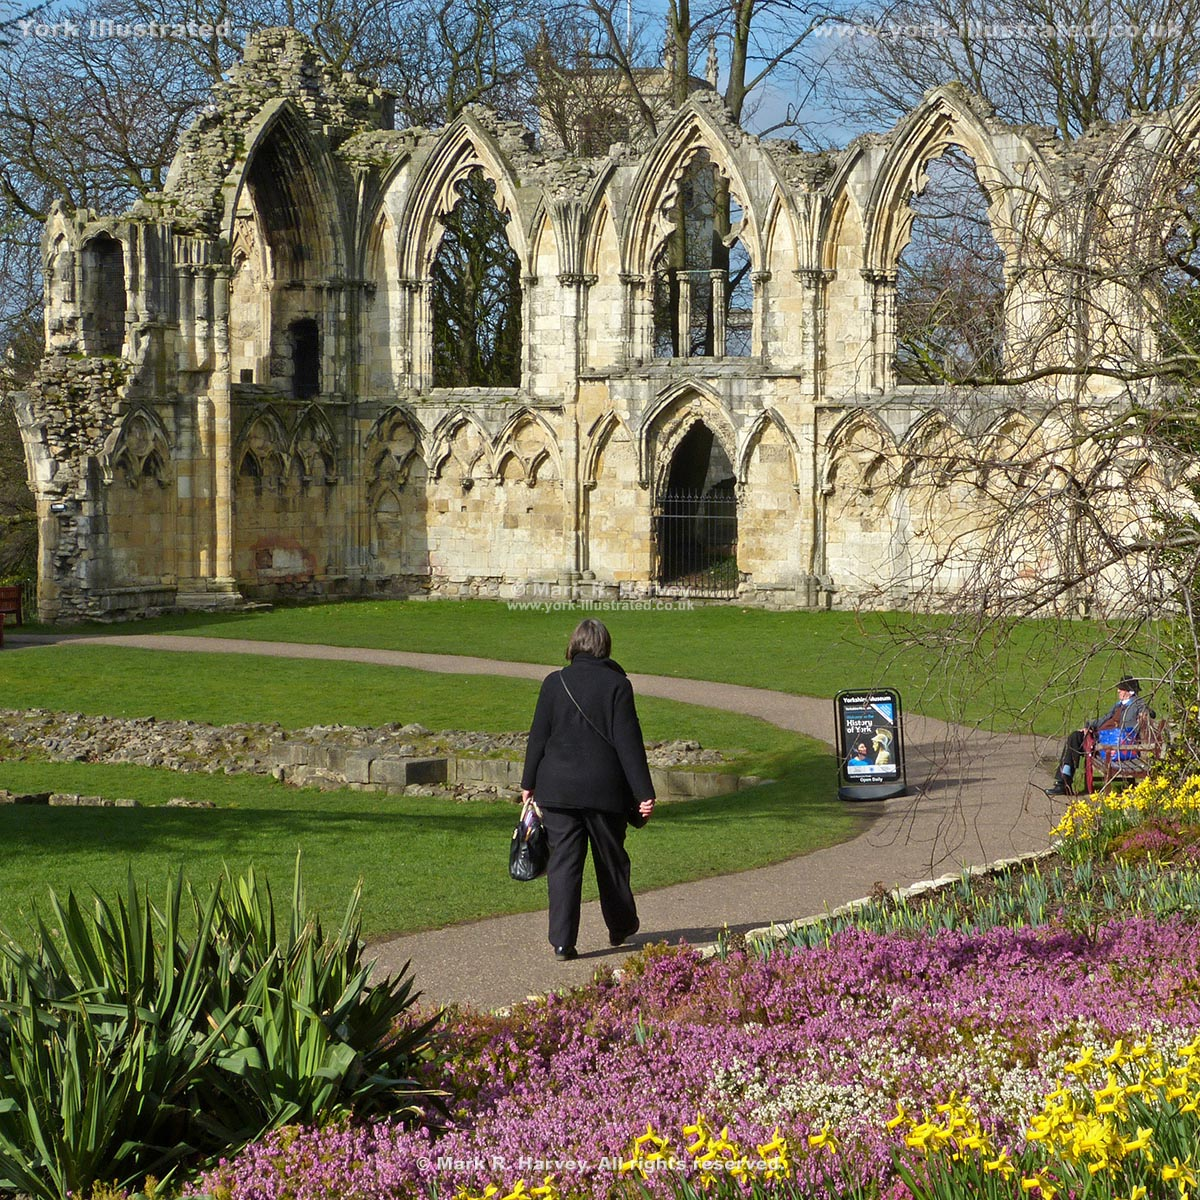 Photograph: Ruined church of St Mary's Abbey, heather and daffodils in Museum Gardens, York.